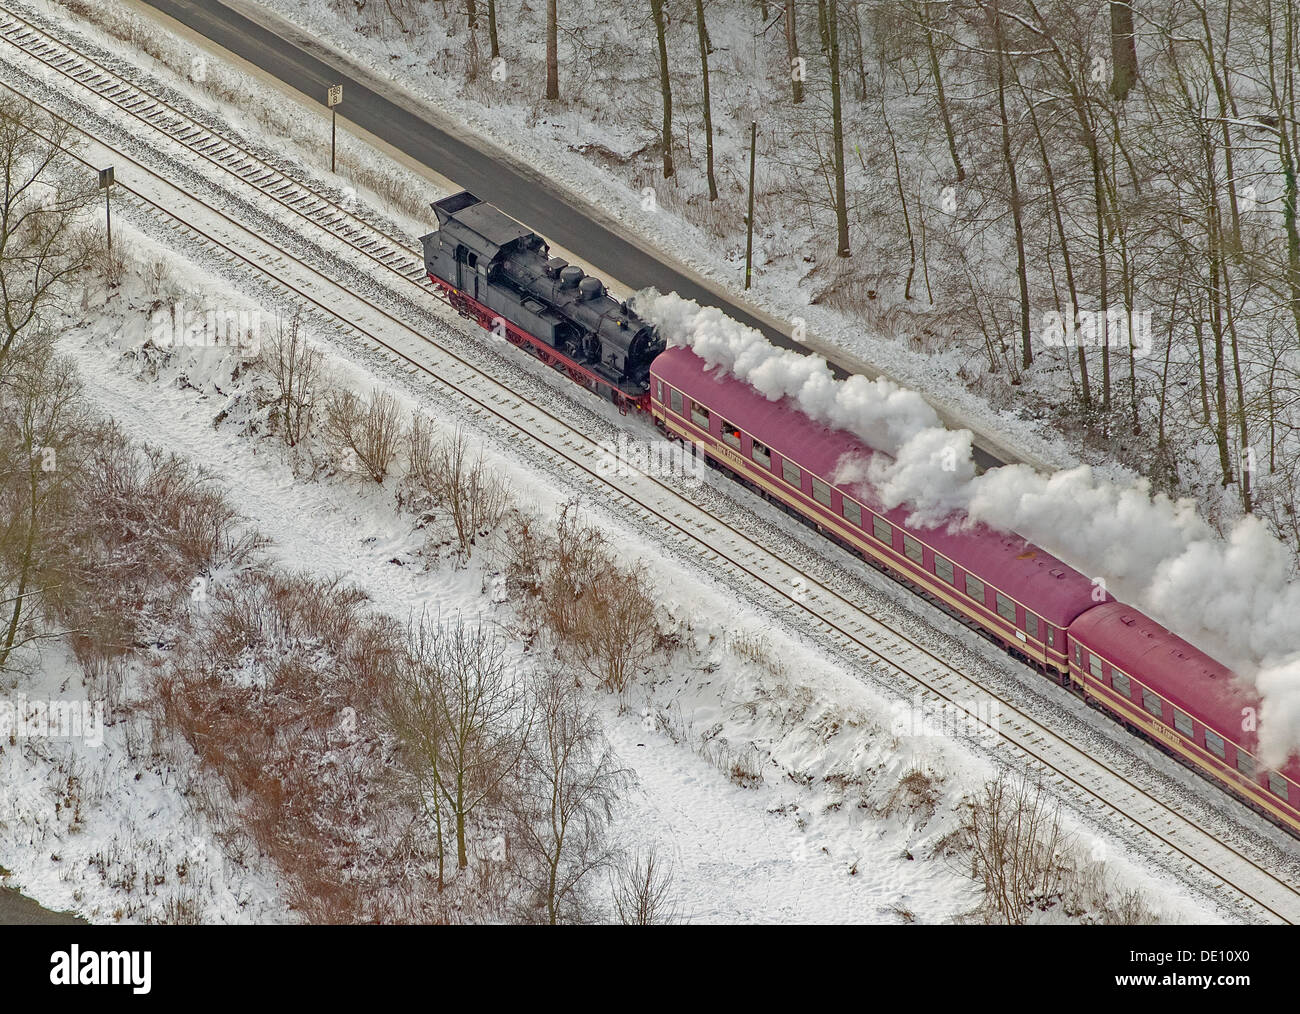 Aerial view, train, steam engine with passenger cars - Stock Image